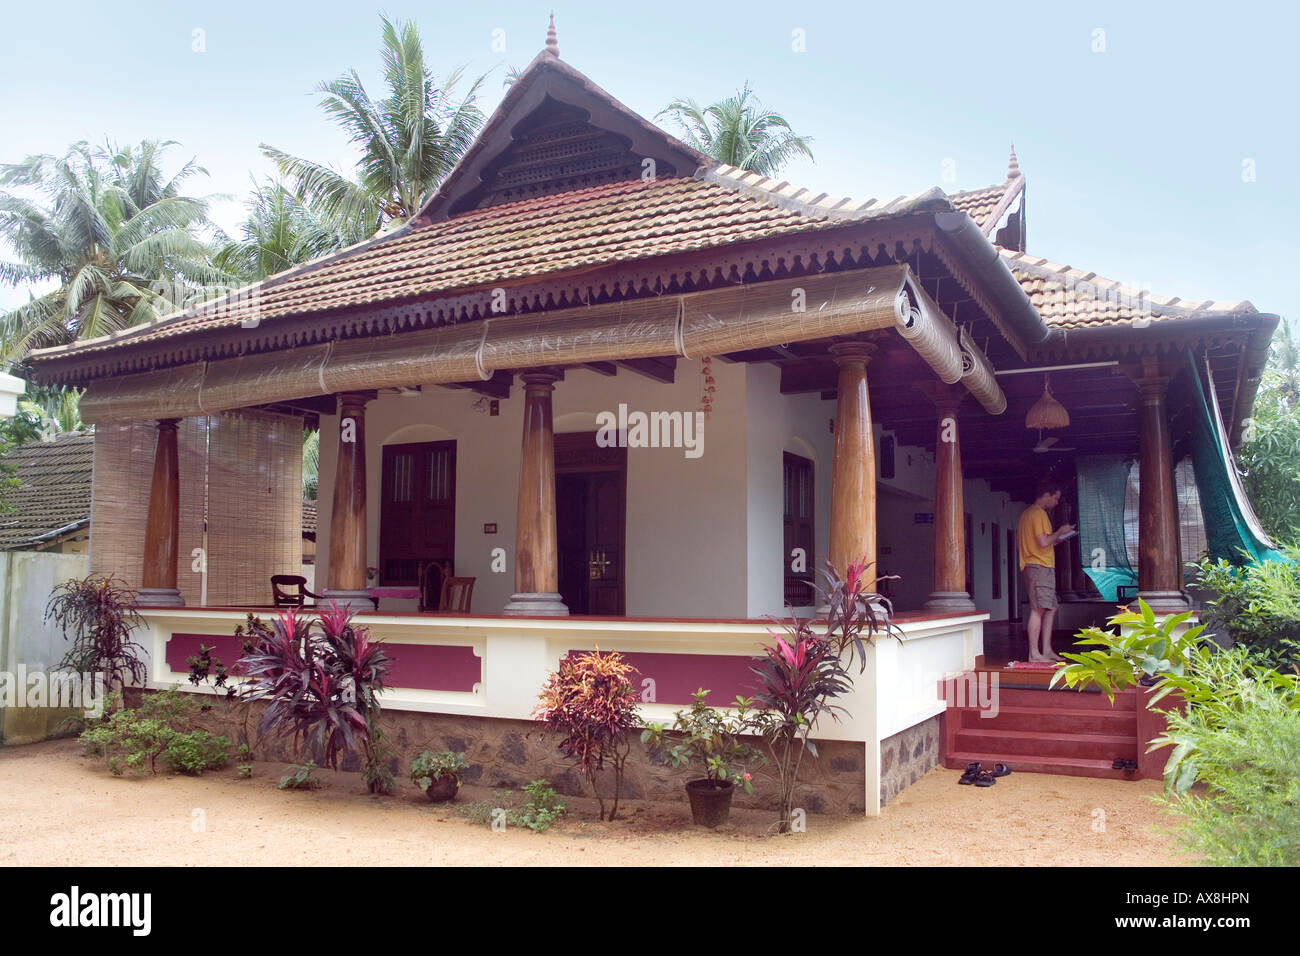 Merveilleux Keralite Bungalow Styled After Traditional Kerala House ...